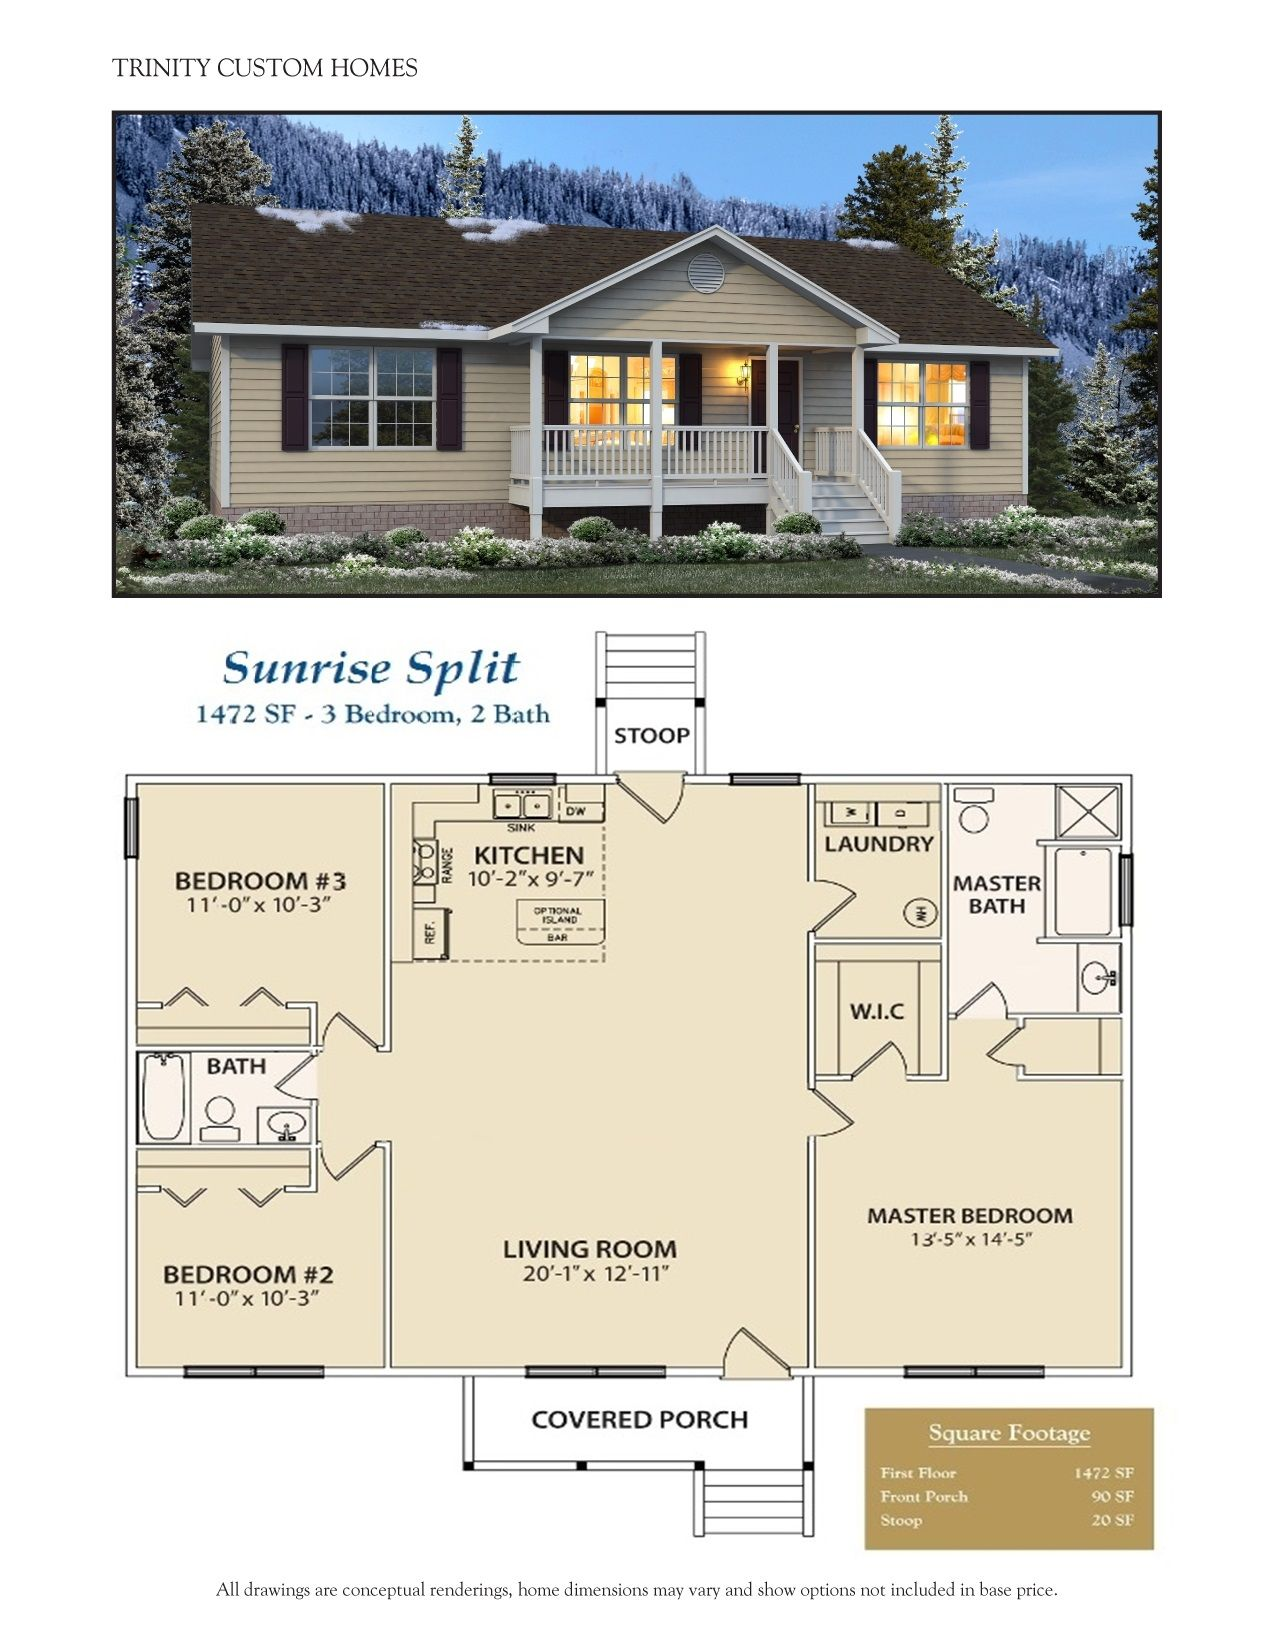 Take a look at all of Trinity Custom Homes Georgia floor plans here     Take a look at all of Trinity Custom Homes Georgia floor plans here  We  have a lot to offer  so contact us today for more information